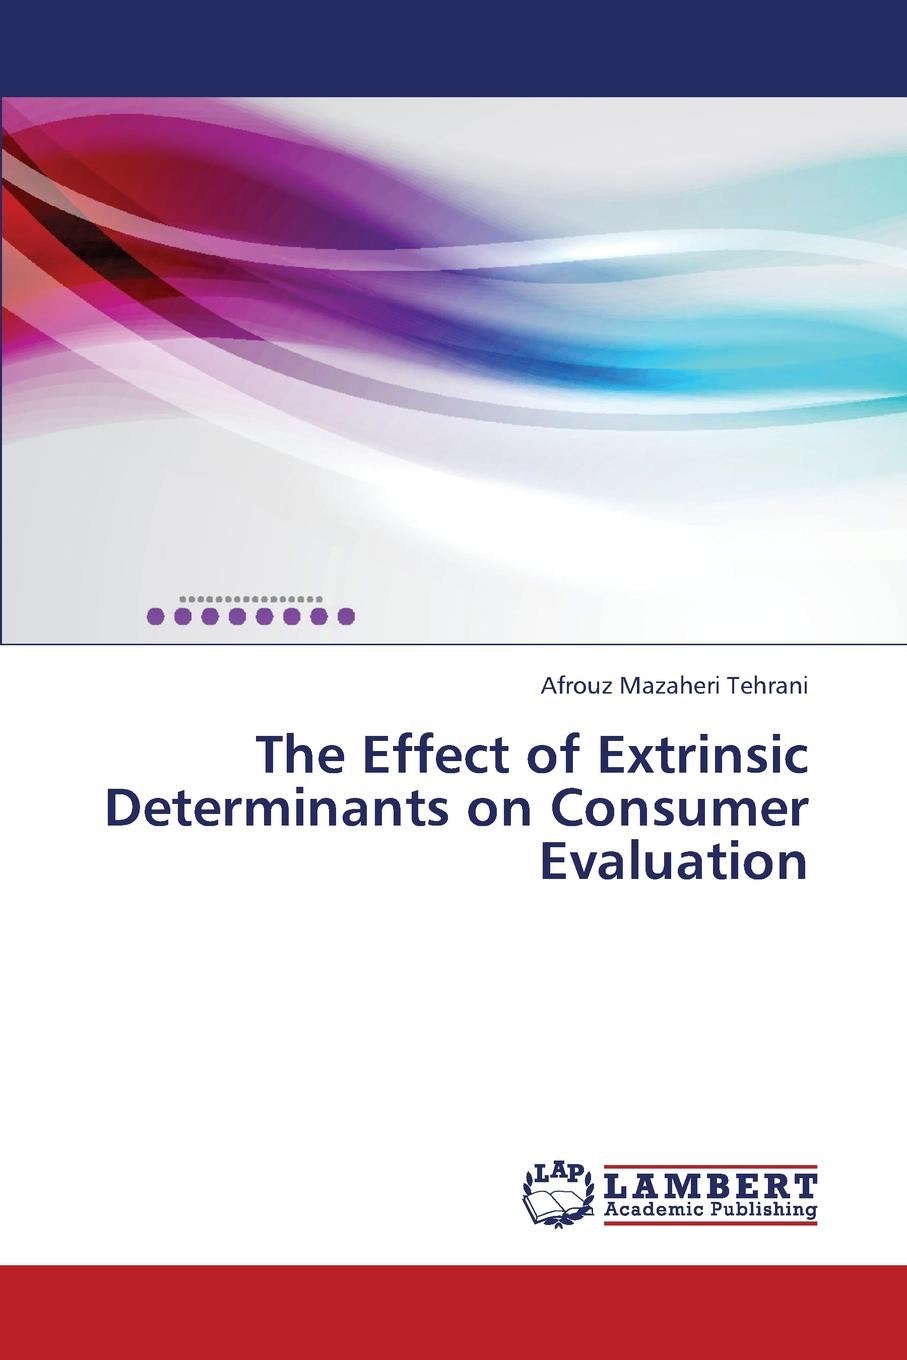 Mazaheri Tehrani Afrouz The Effect of Extrinsic Determinants on Consumer Evaluation muhammad naeem intrinsic versus extrinsic motivation and the effects of those types on employees